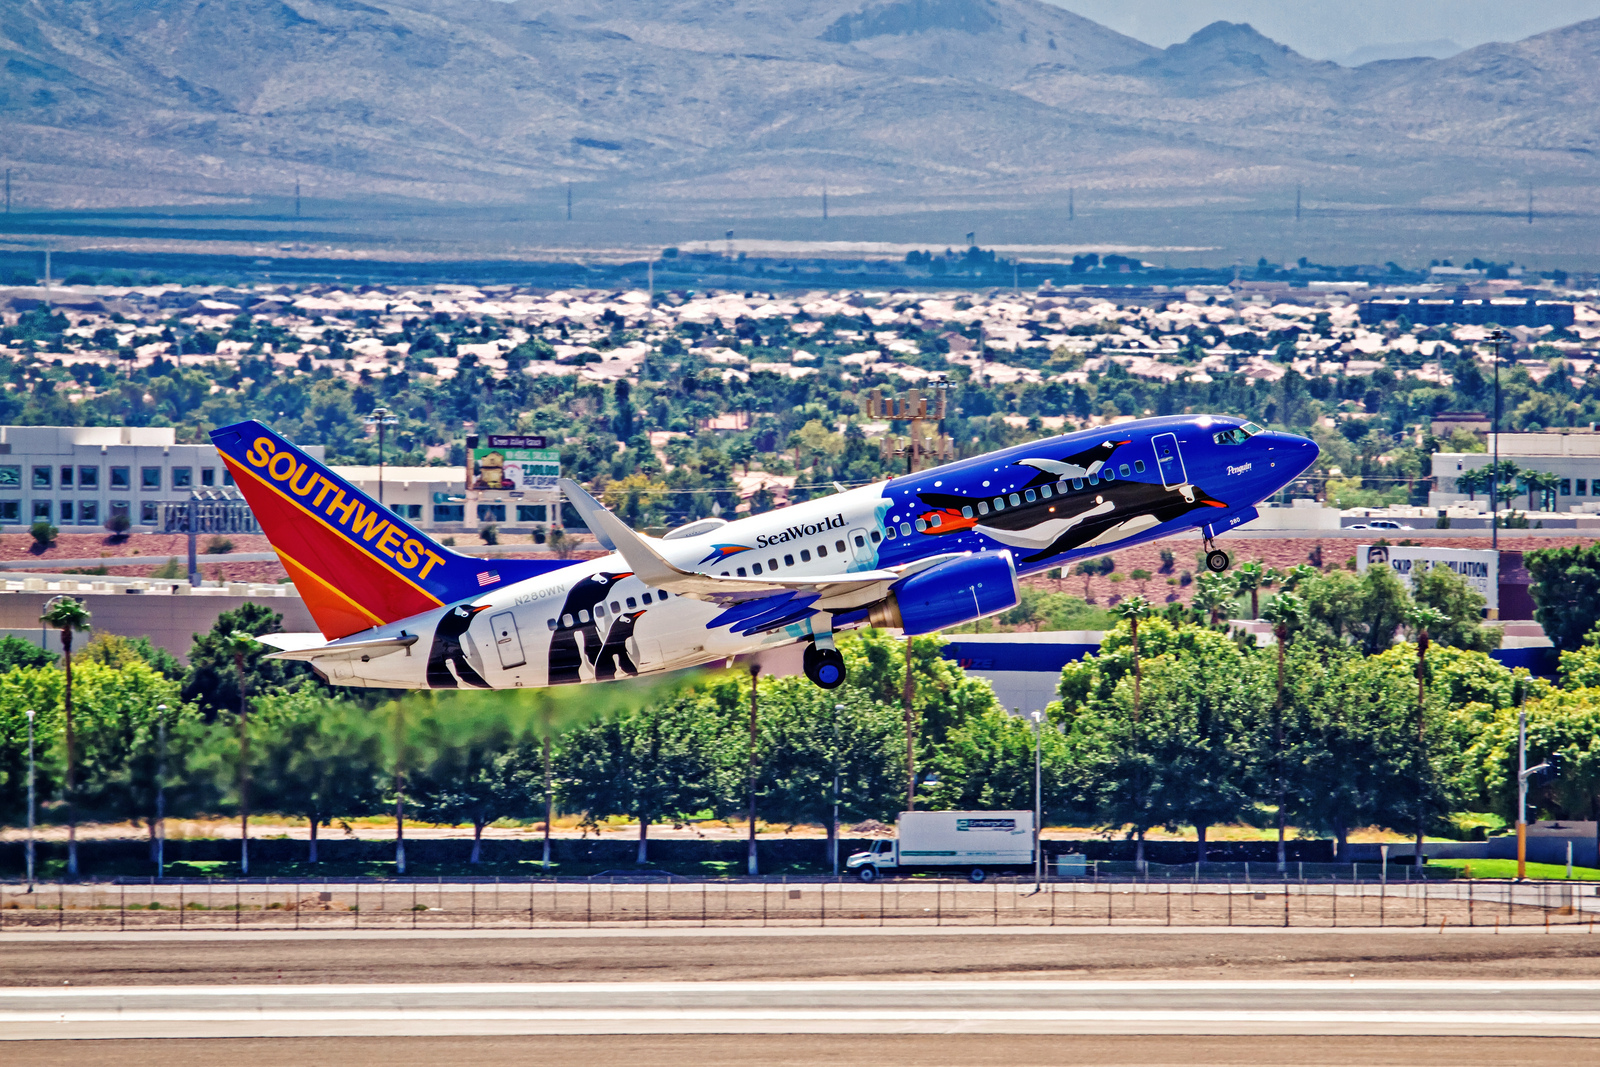 Southwest Airlines' Flight #600 departs for San Francisco, California